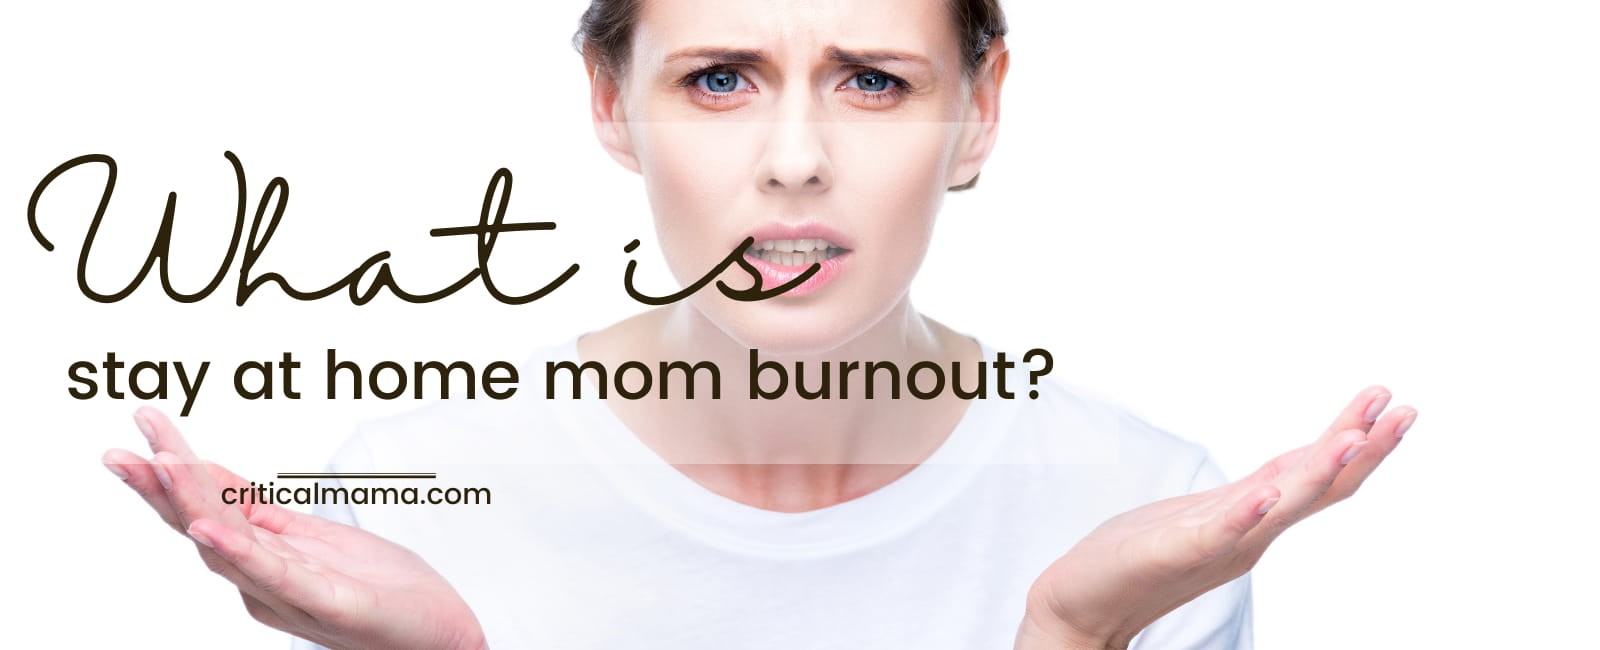 Lady Asking What Is Stay At Home Mom Burnout